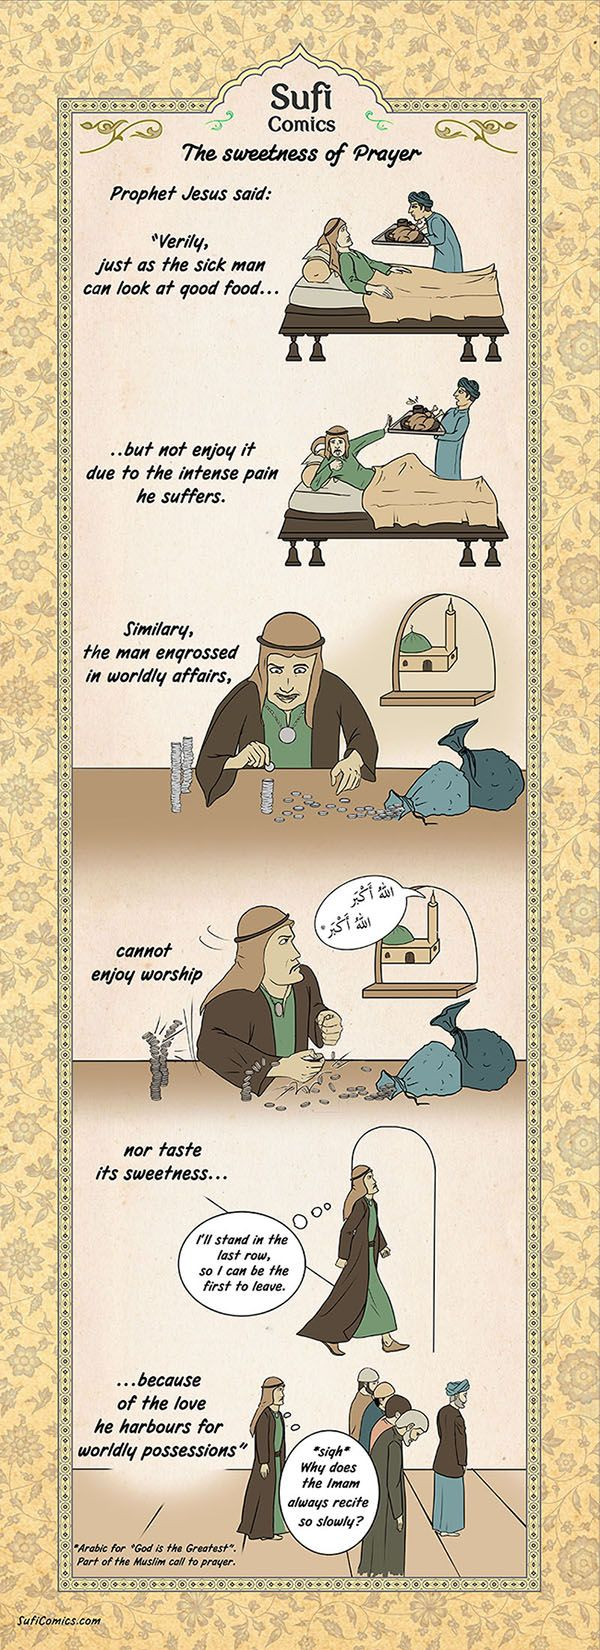 The Sweetness of Prayer - Sufi Comics